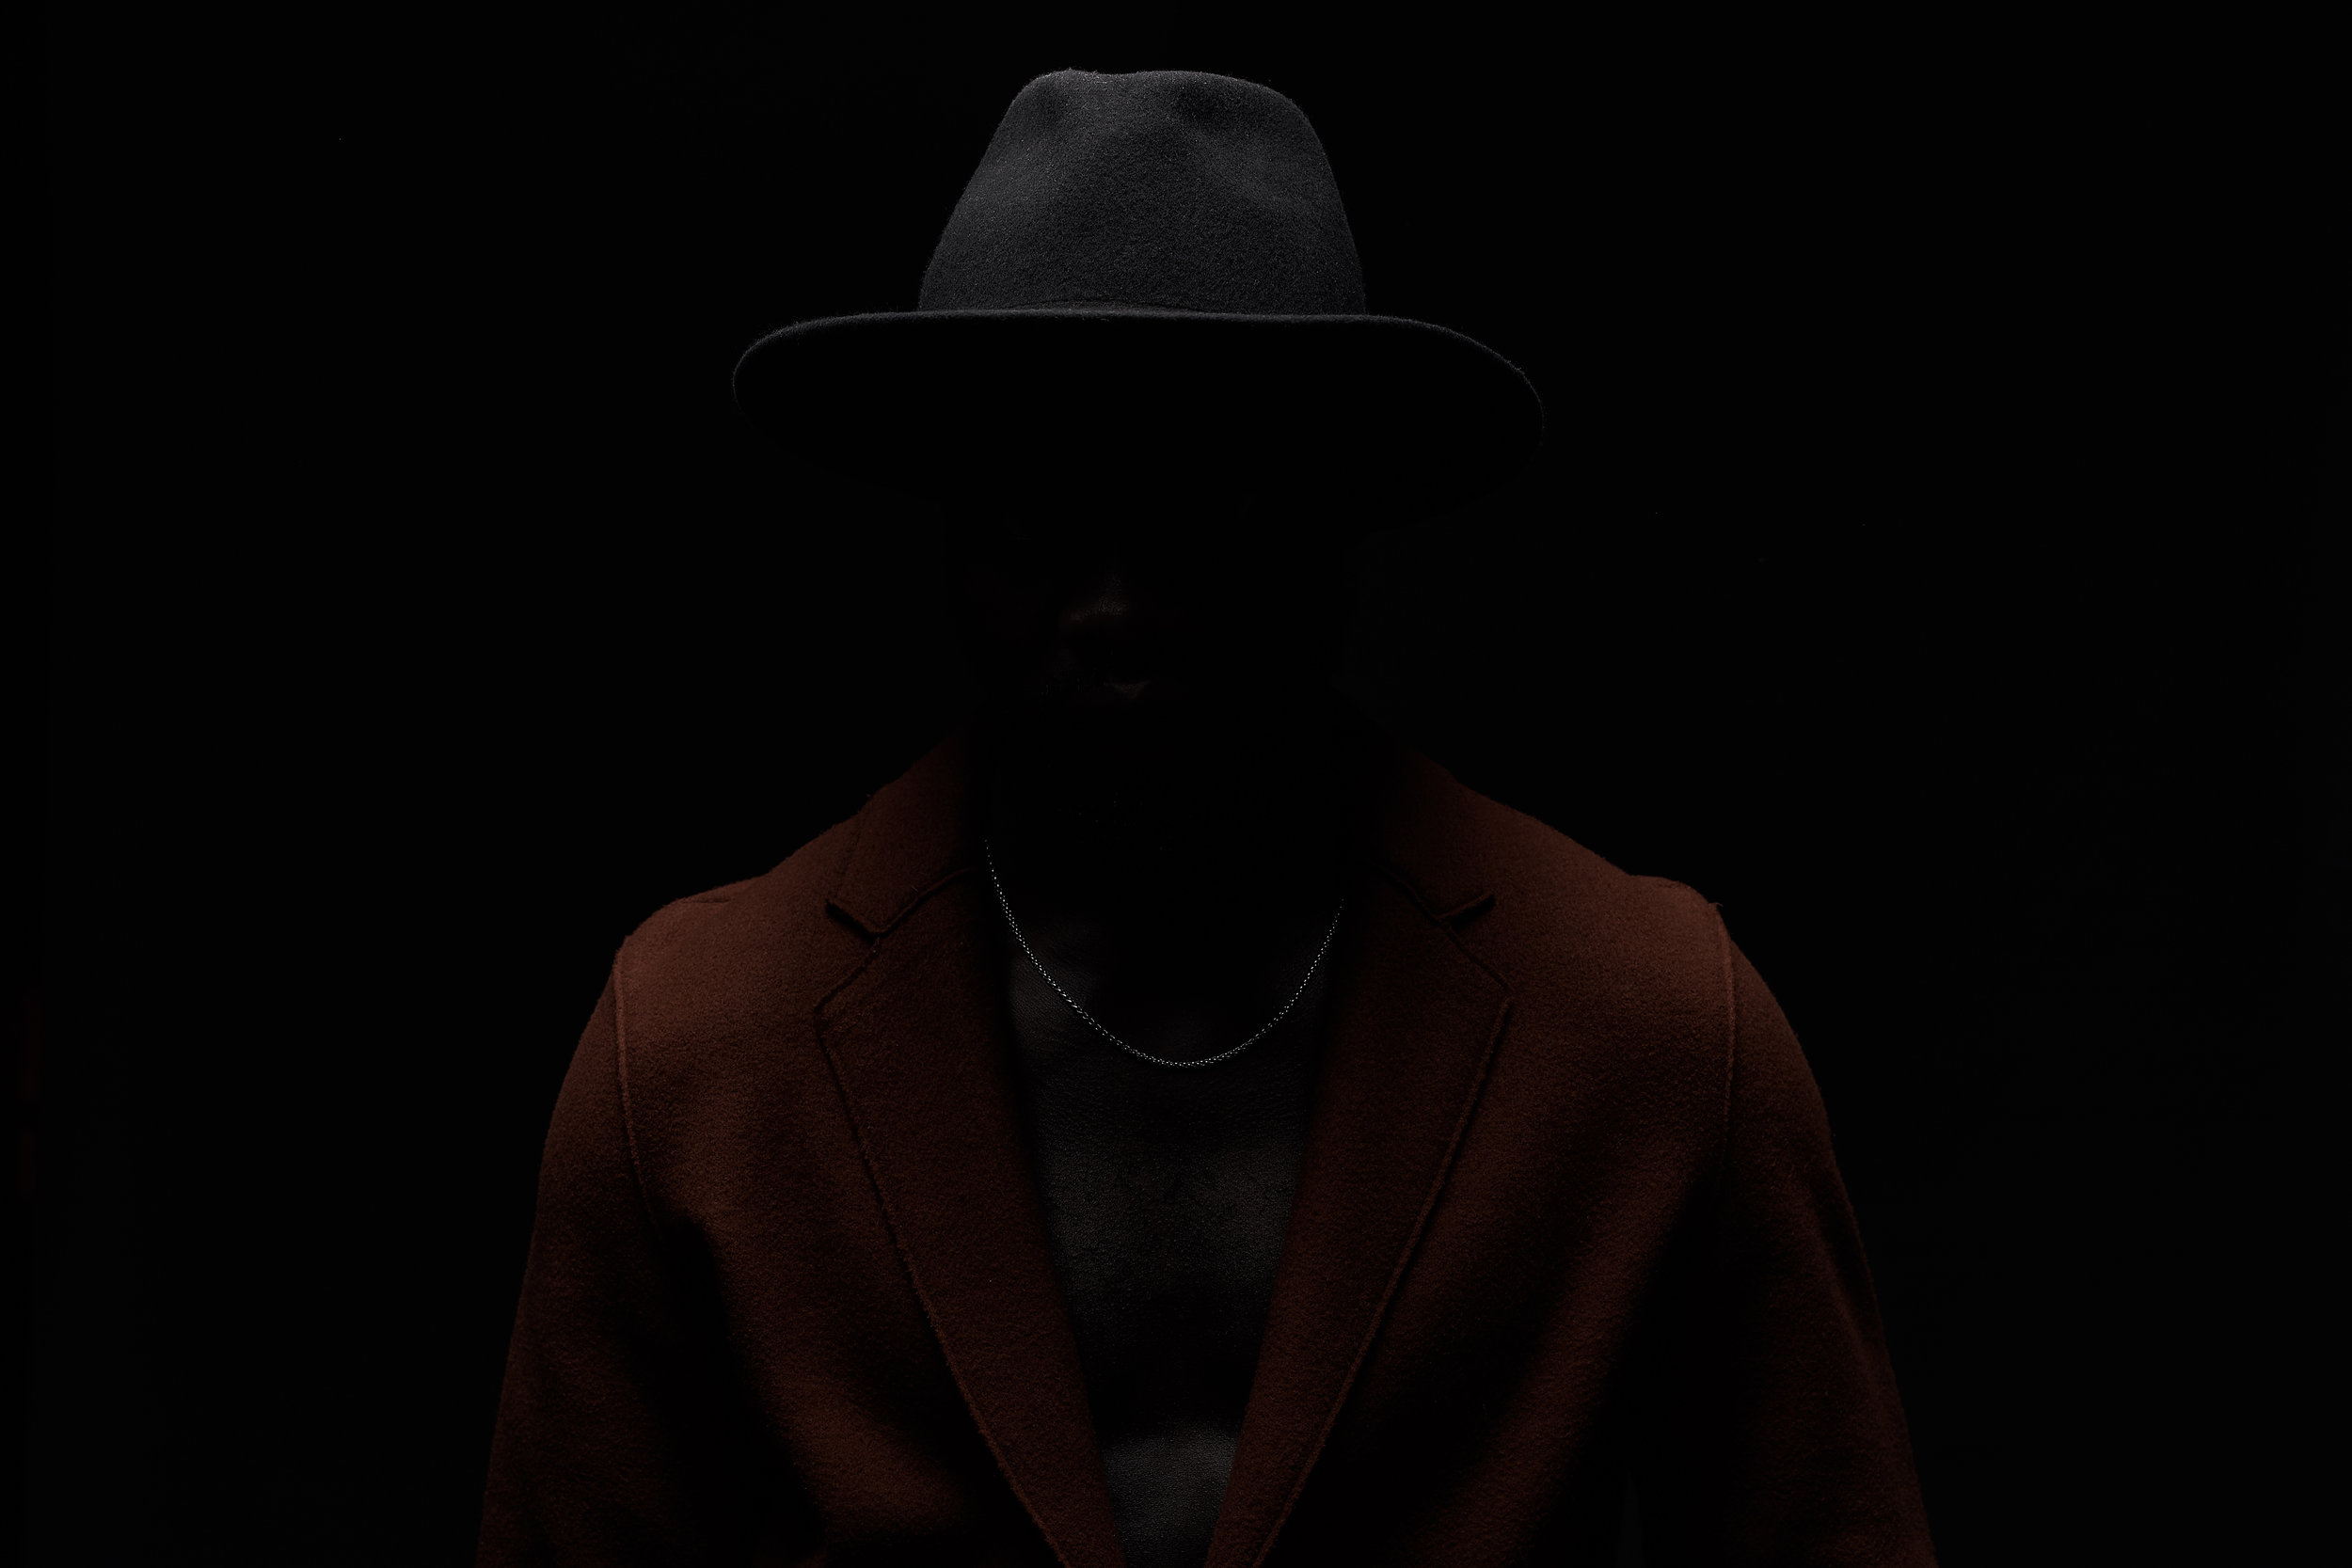 Man in the dark. Dark key portrait of black man on black background. Man dressed in black hat and brown coat